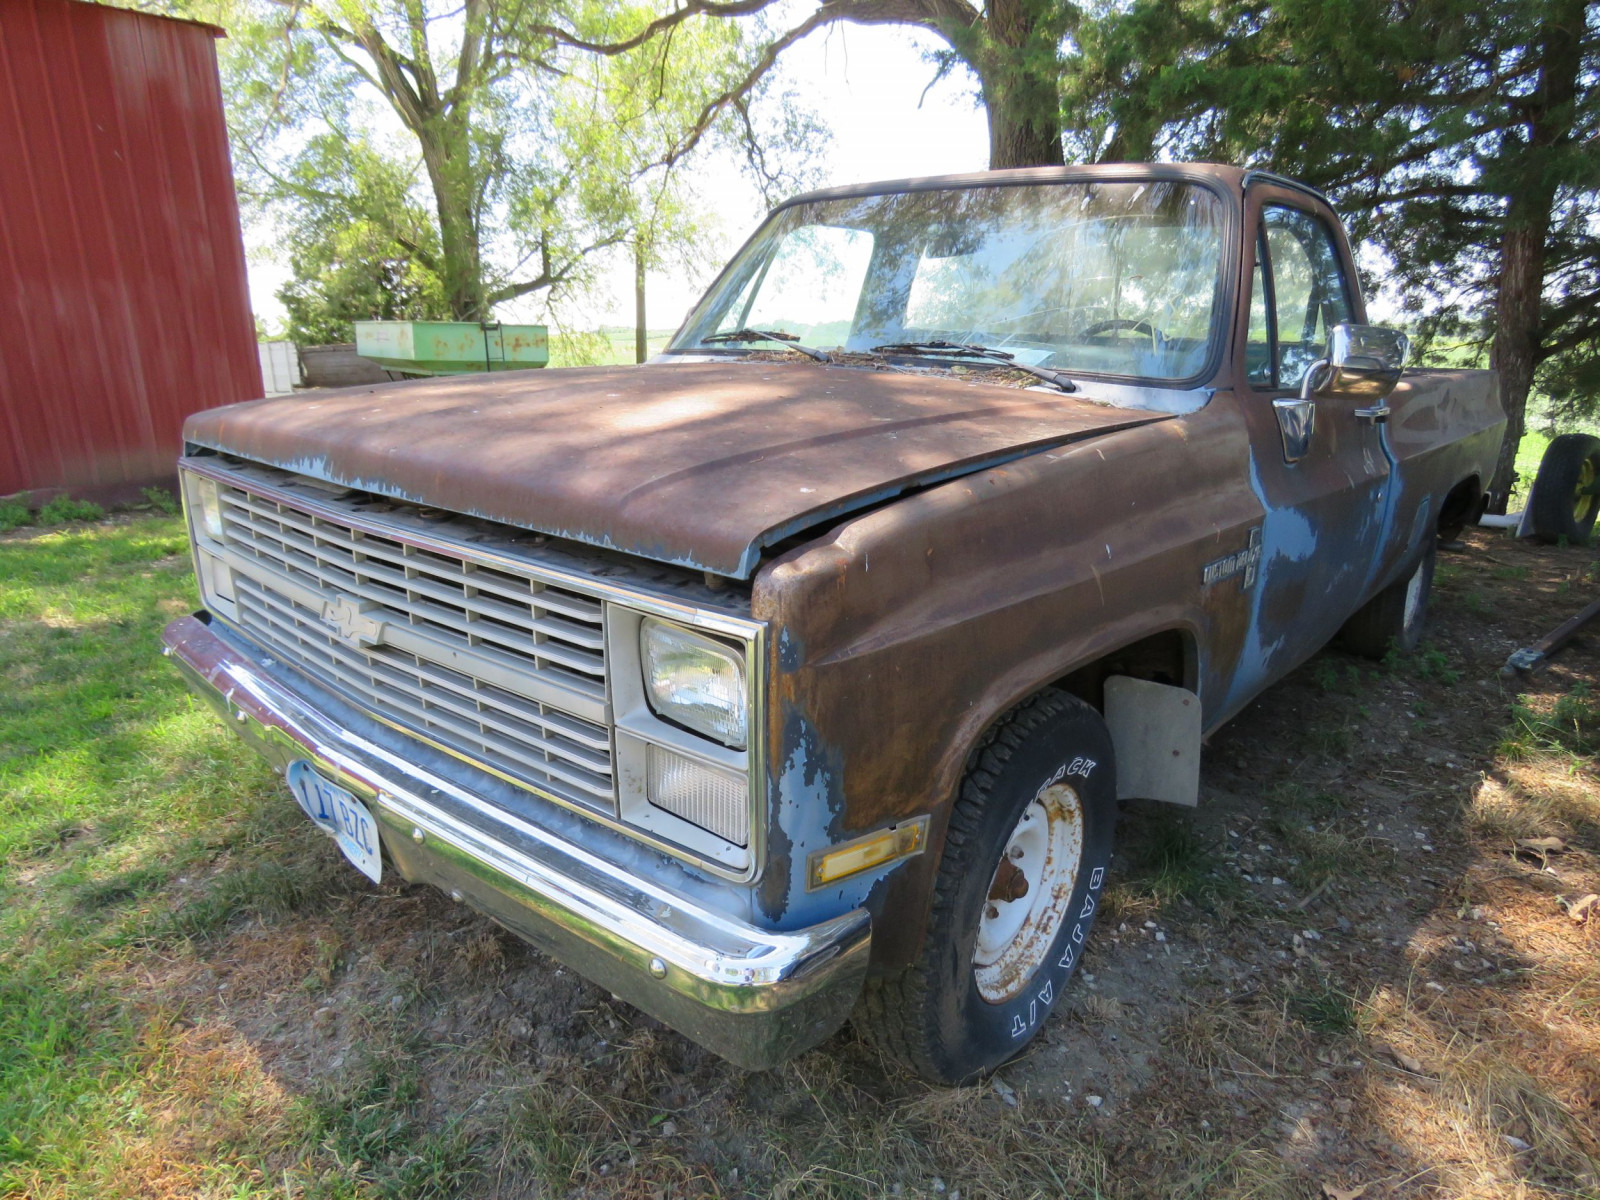 1984 Chevrolet Custom Deluxe 10 Pickup for Restore - Image 1